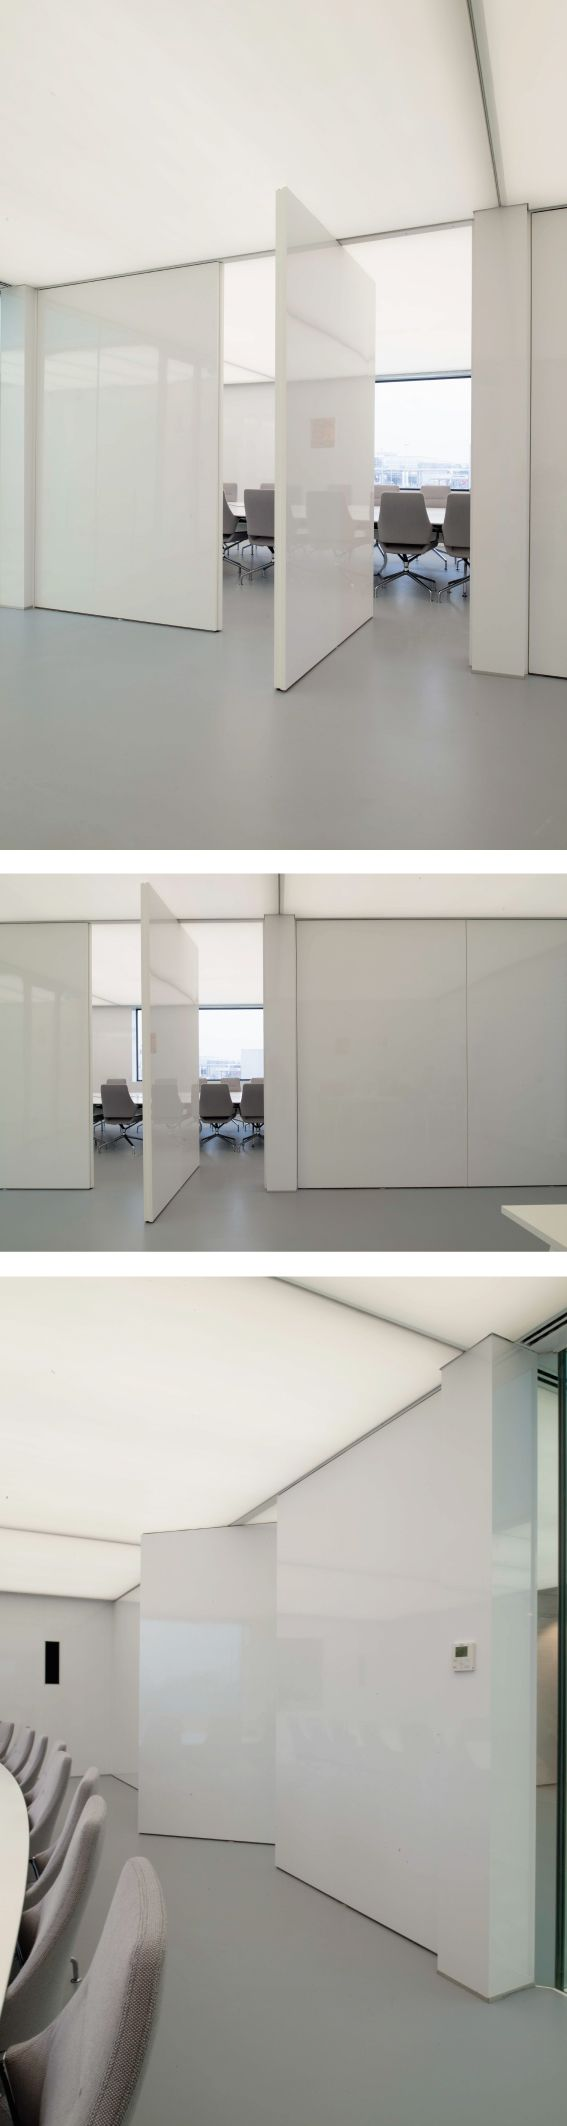 White HPL Pivot Doors fitted in a translucent stretch ceiling. #pivotdoors #interiordoor